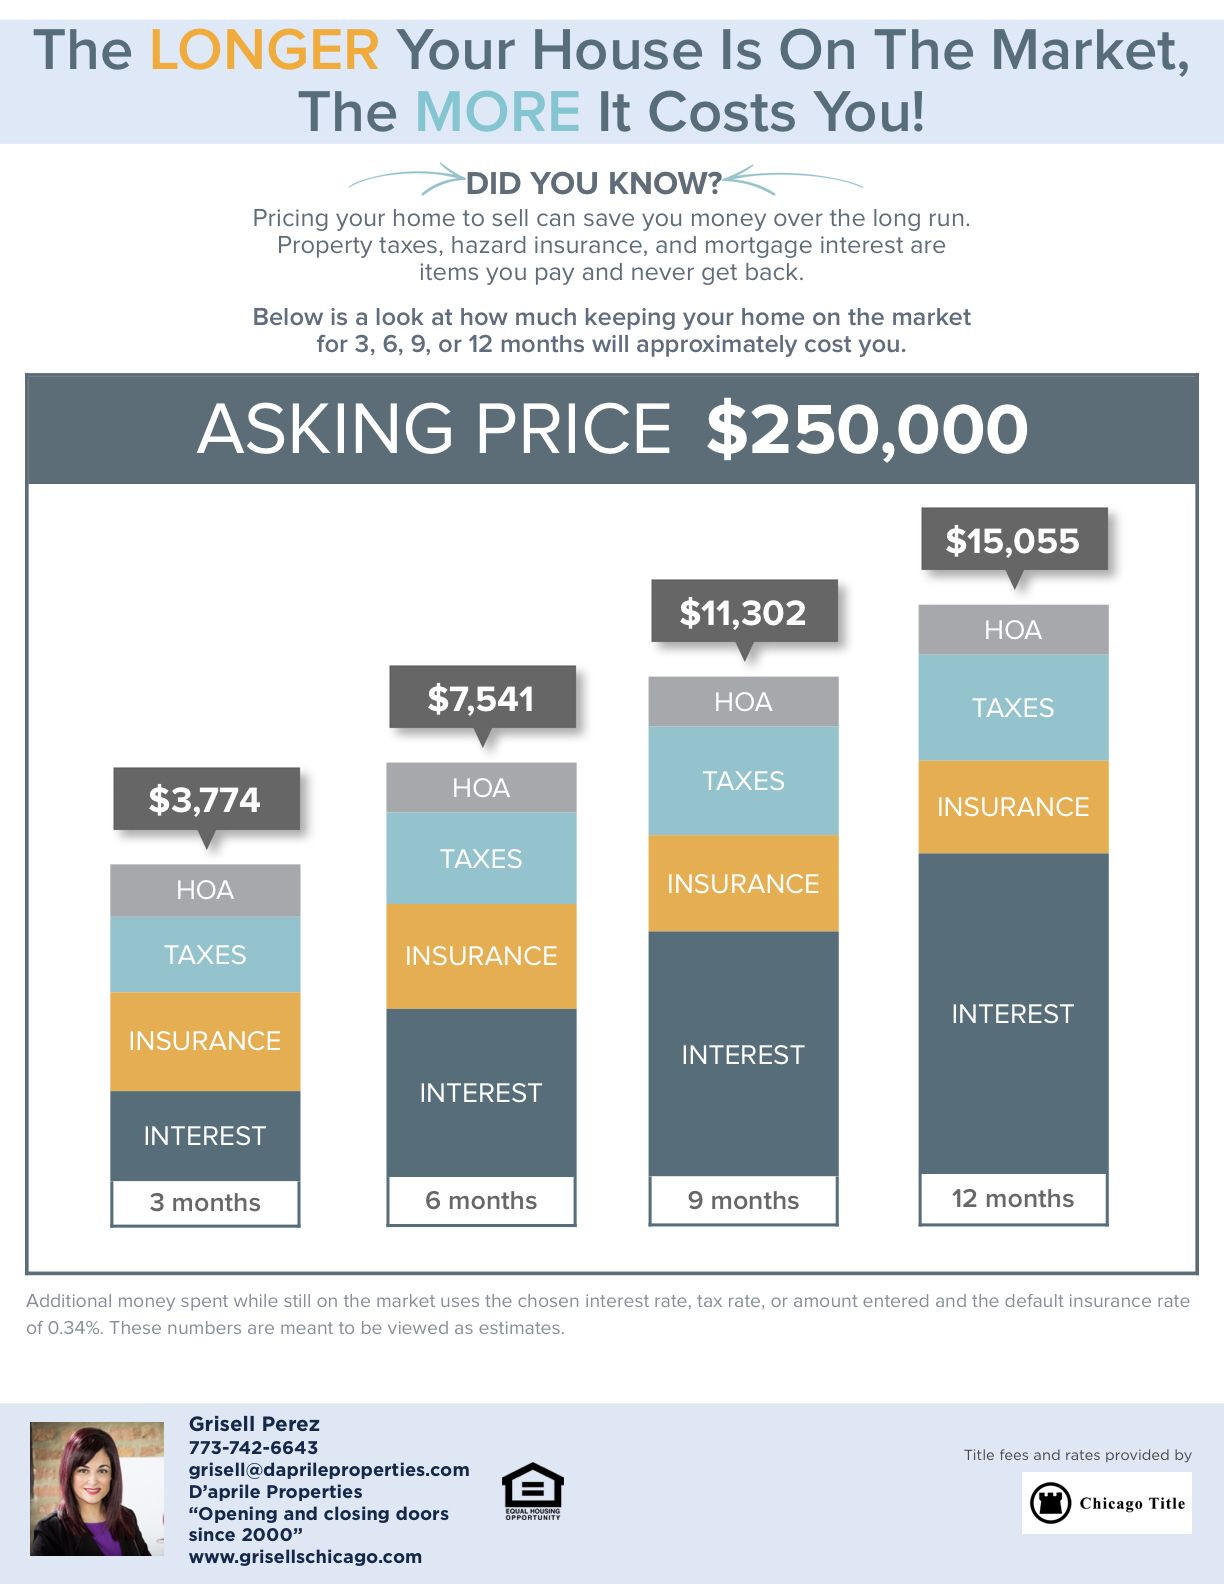 Below Is A Look At How Much Keeping Your Home On The Market For 3